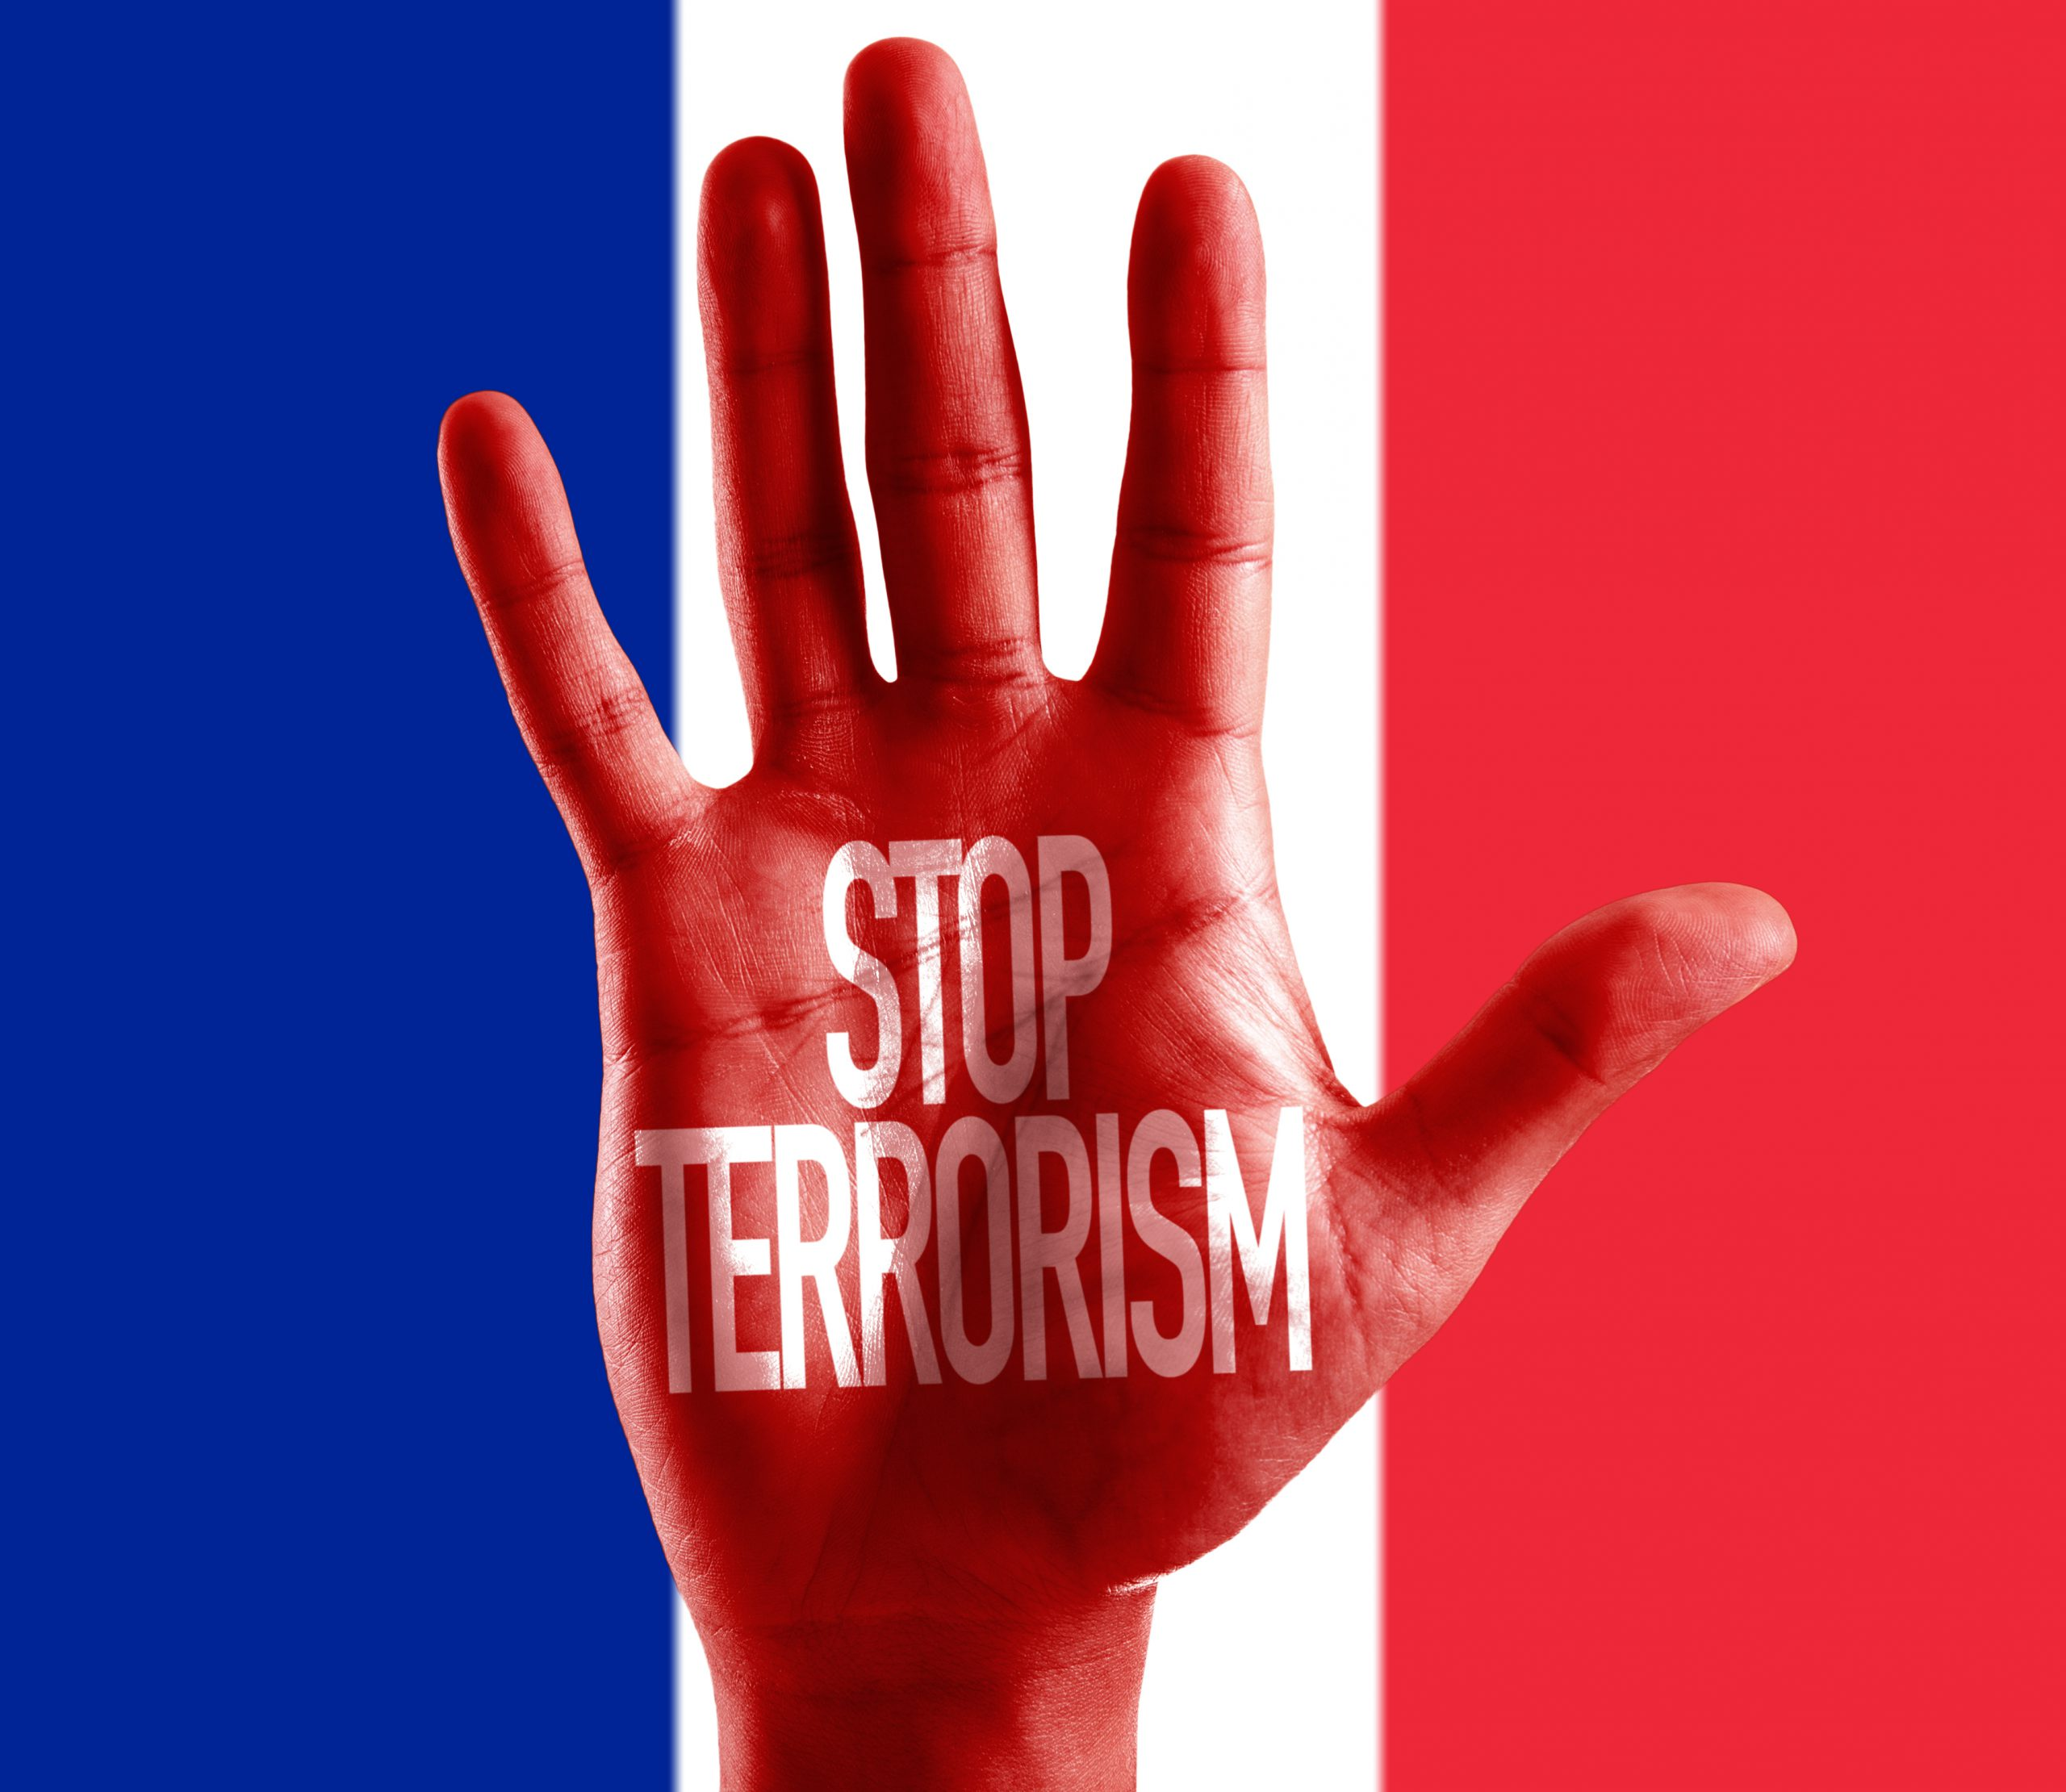 BS_Stop Terrorism painted on hand_French Flag_Gustavo Frazao_108506684